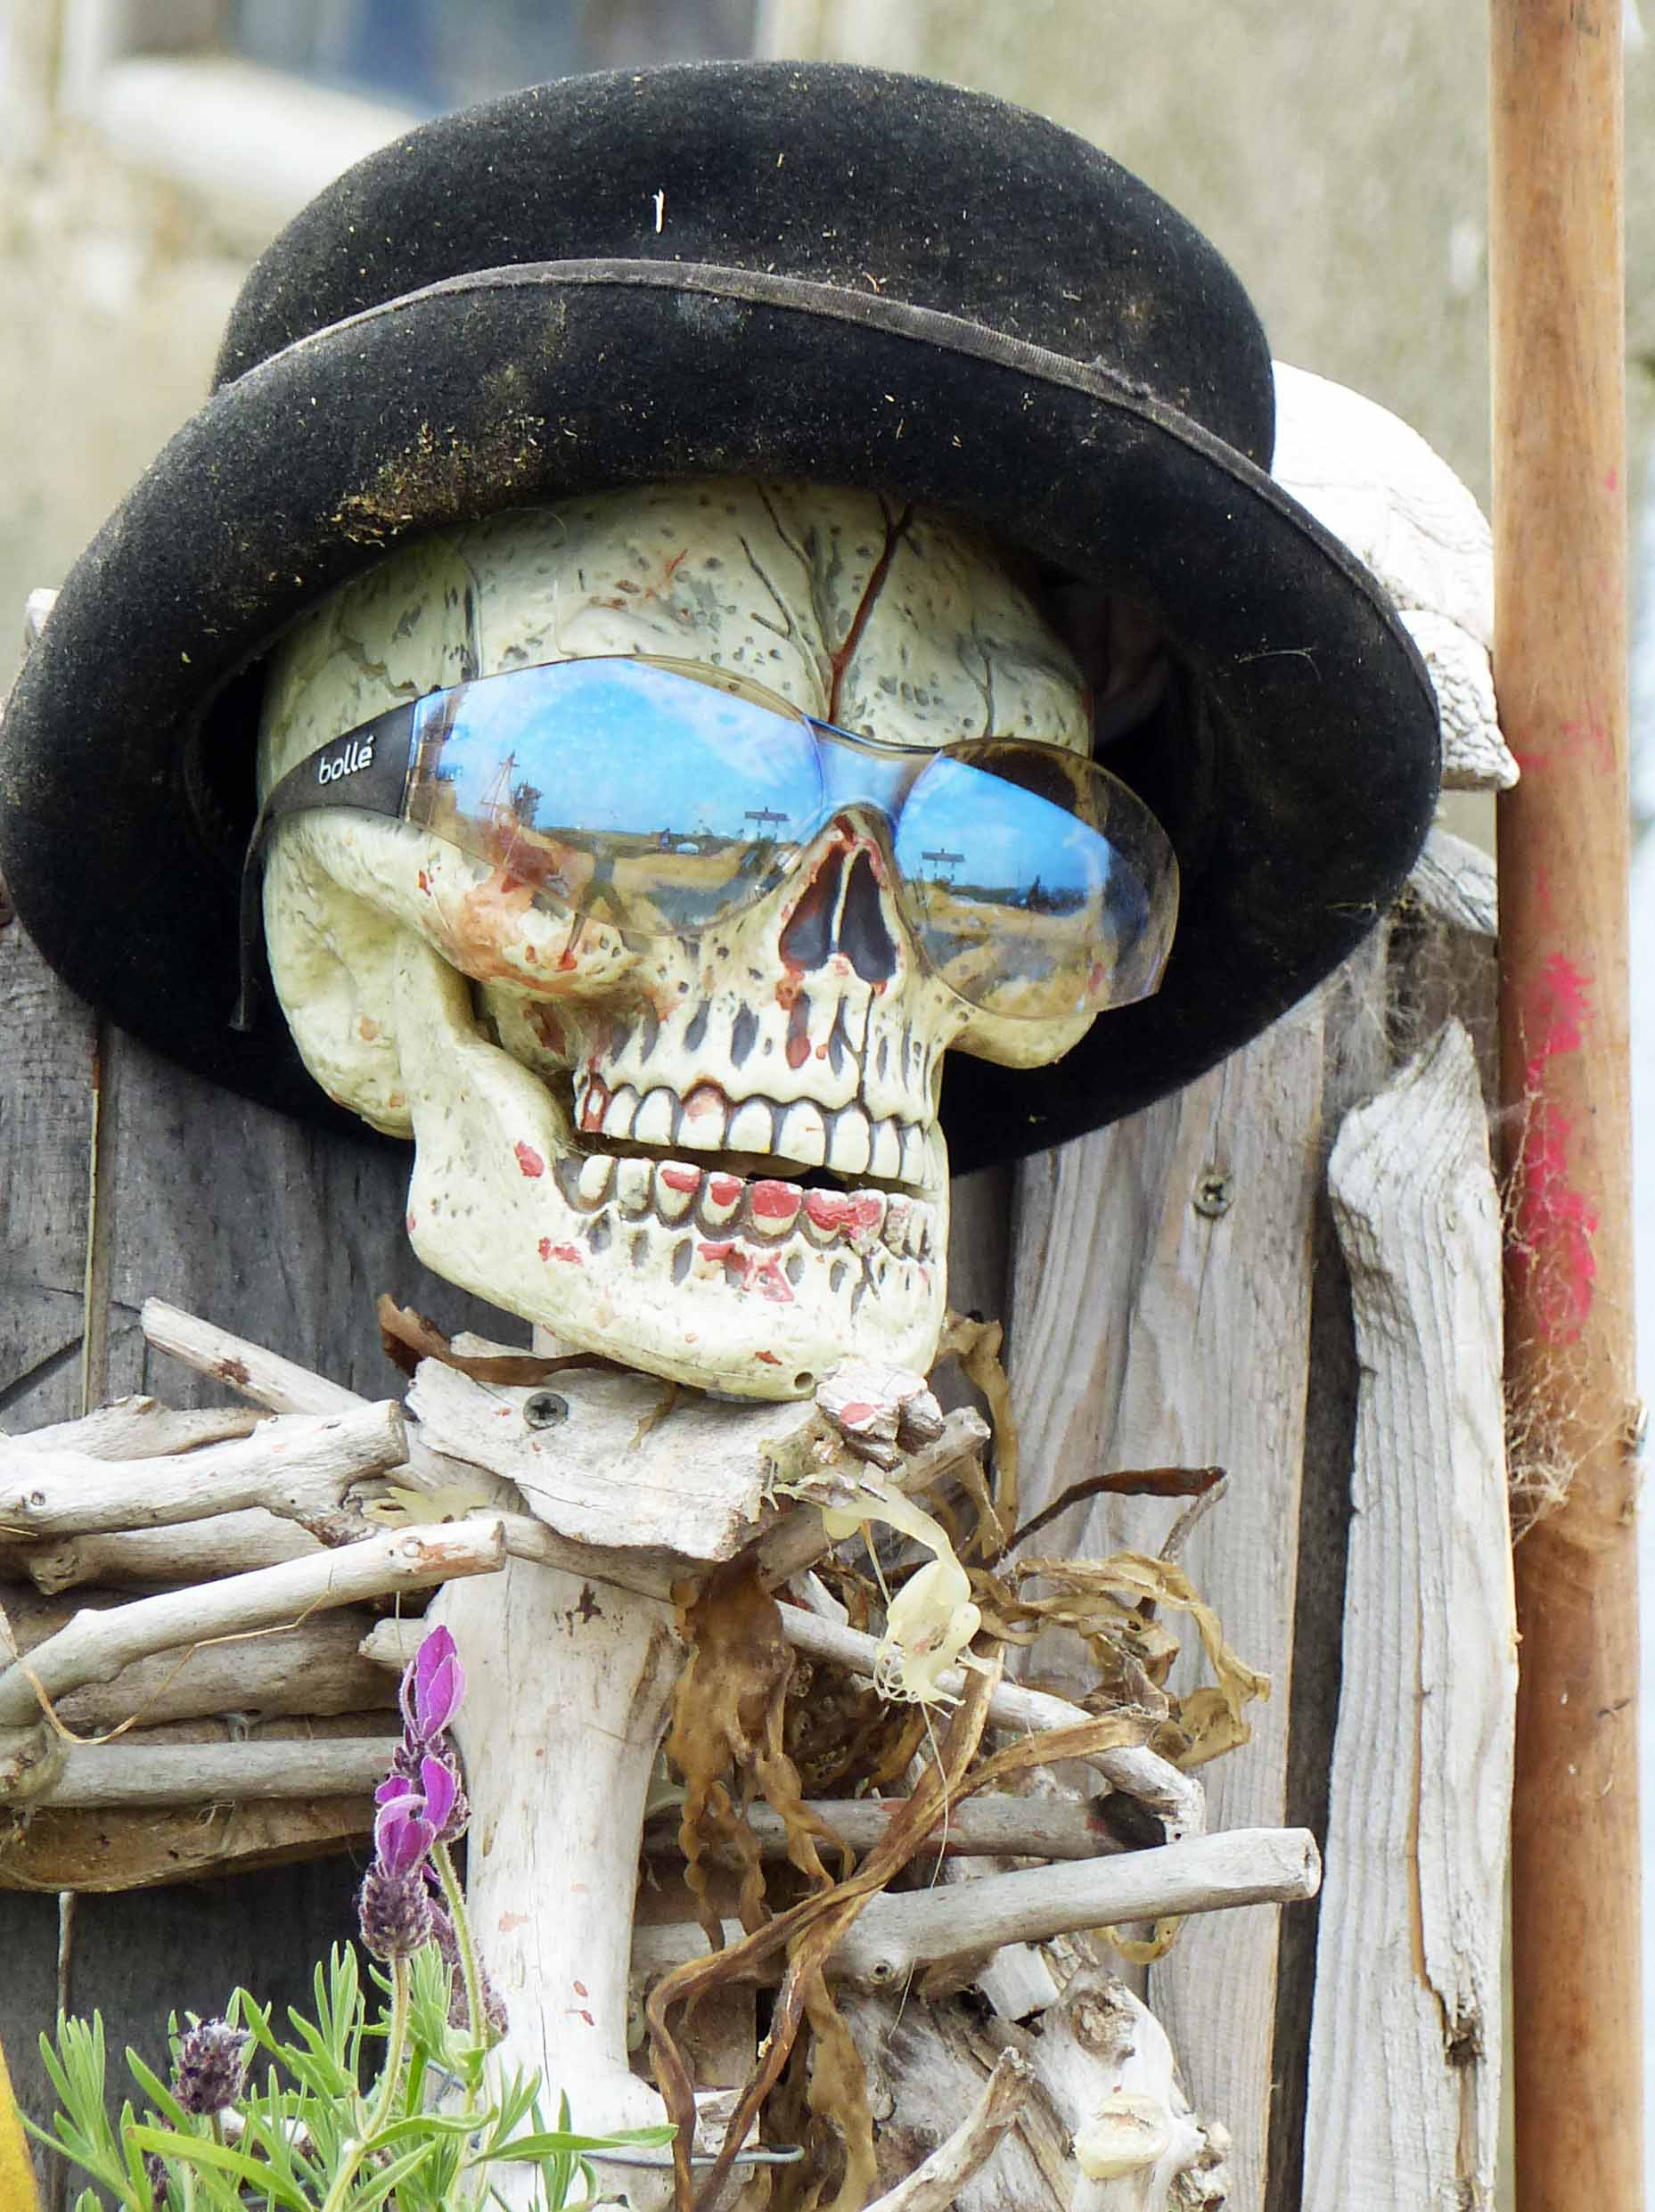 Skeleton wearing hat and sunglasses